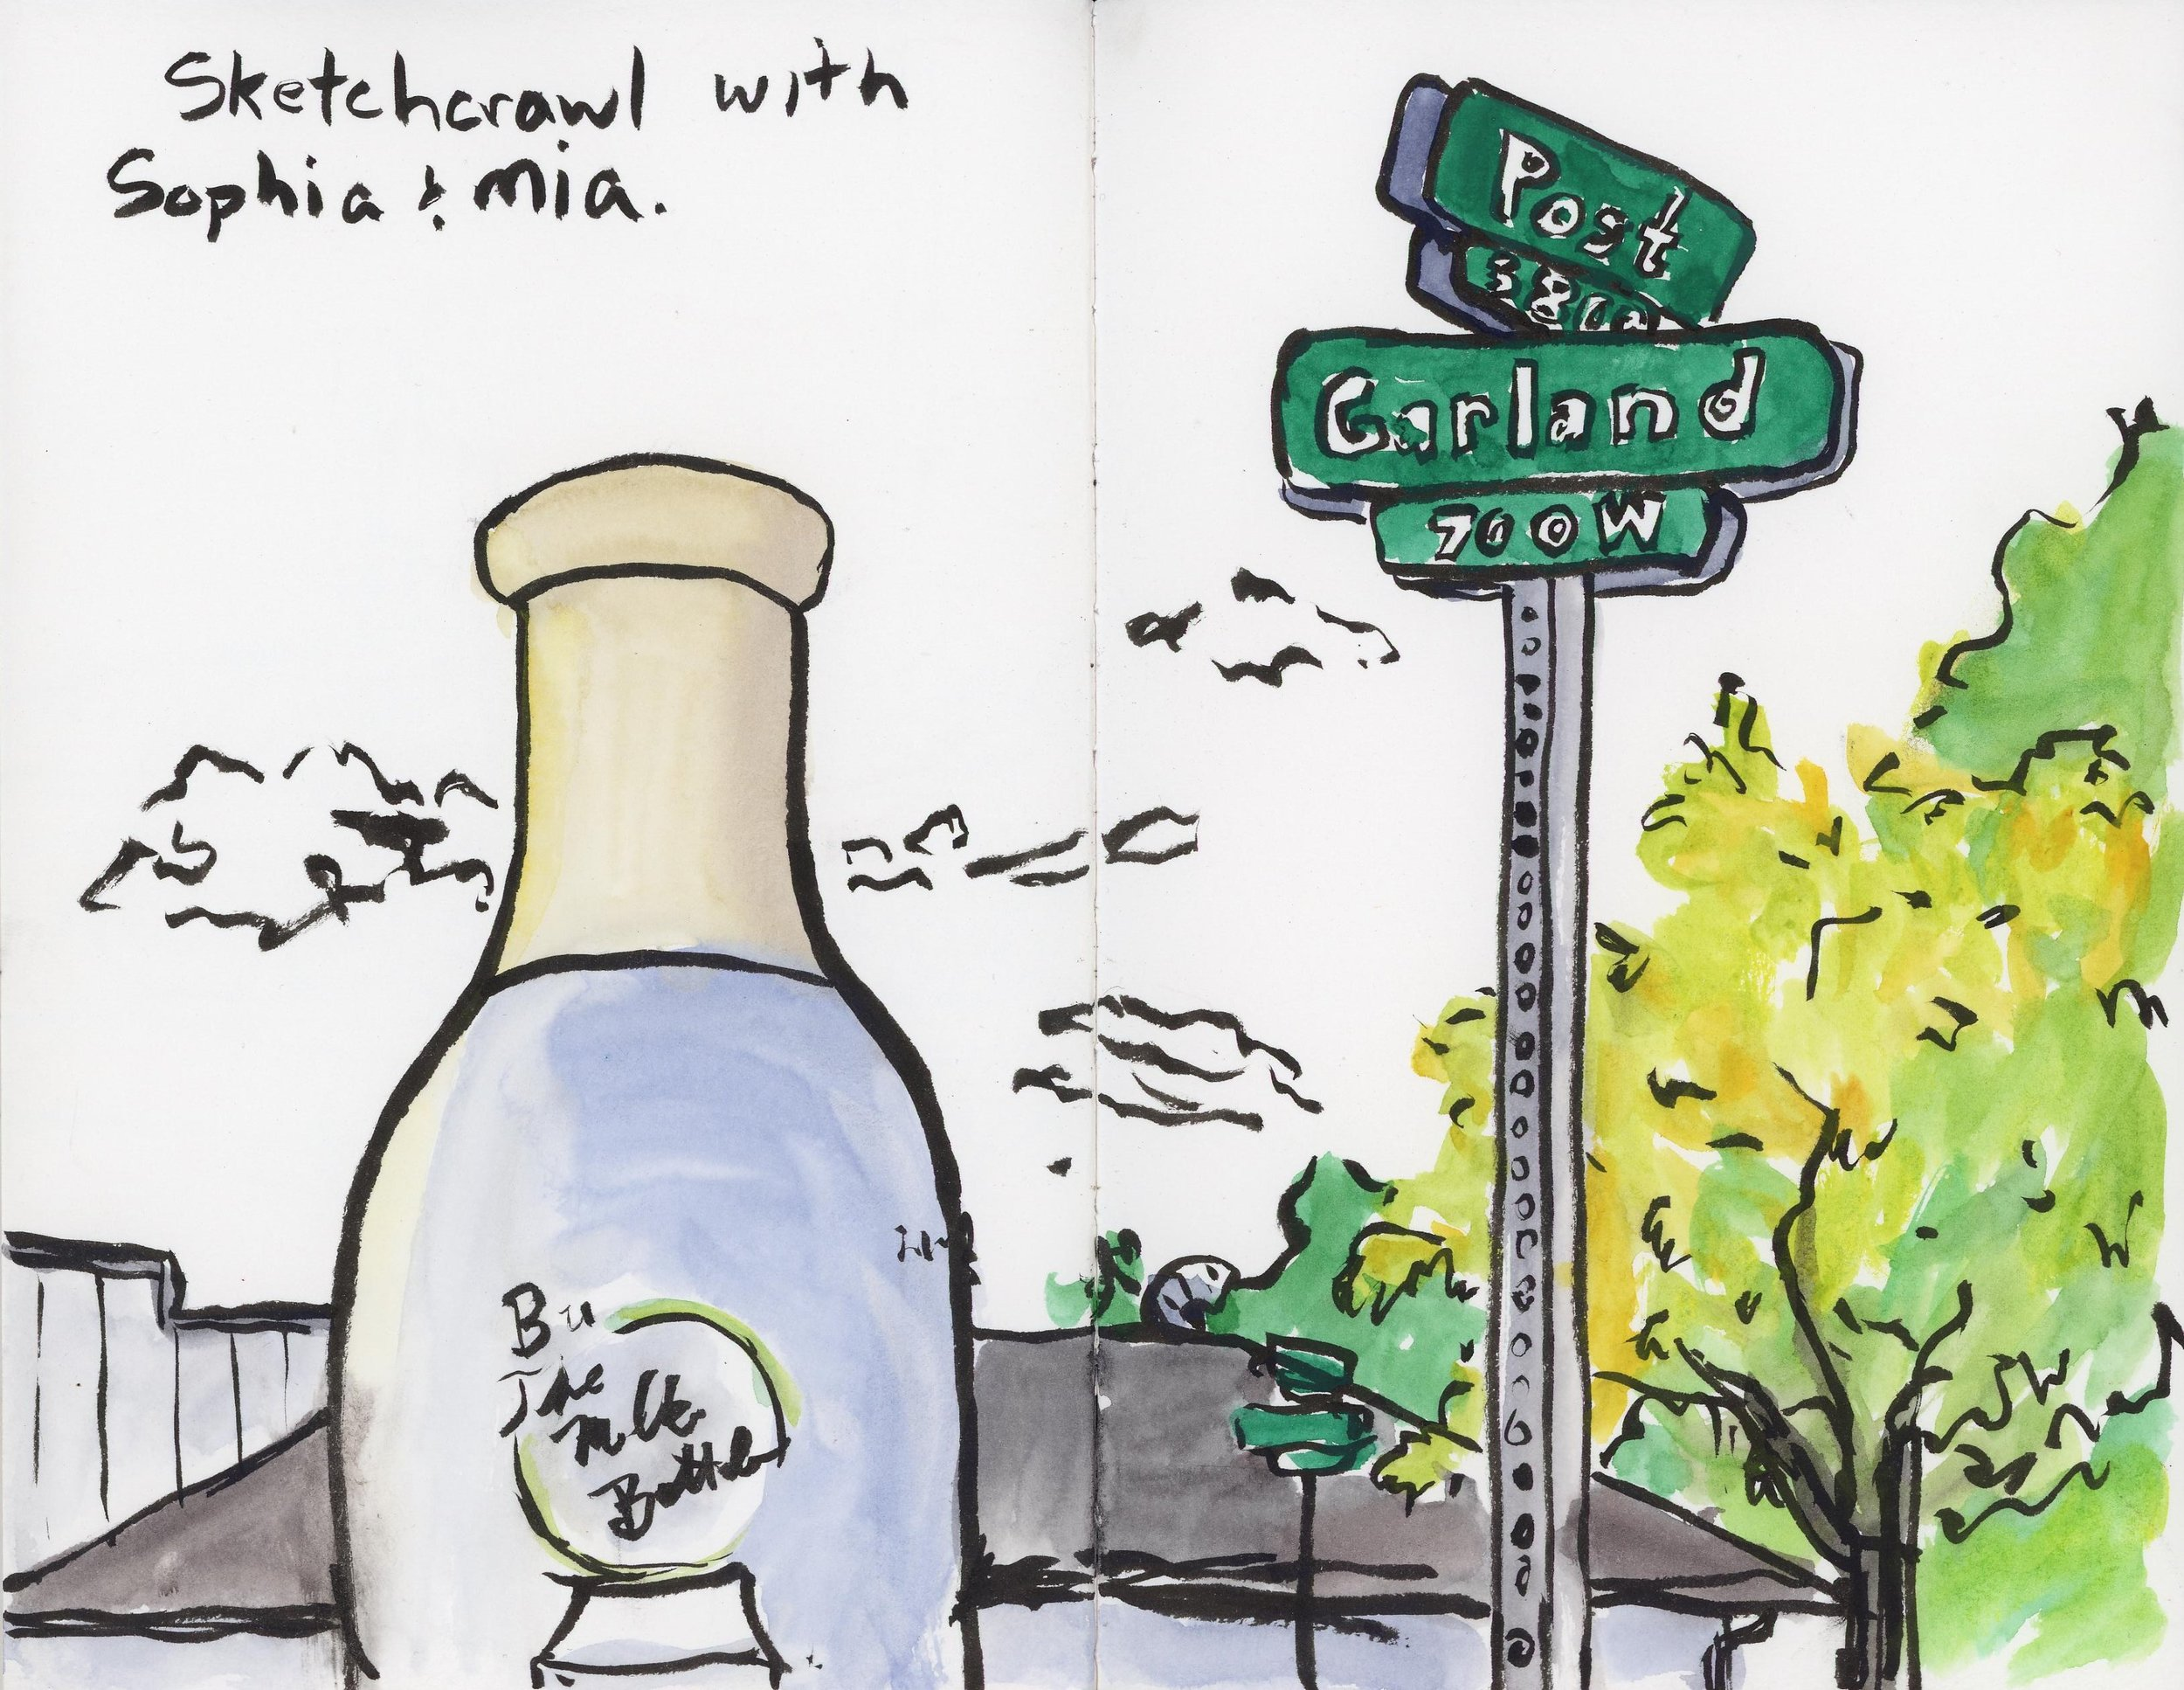 I taught several classes at the Spokane Art School and Corbin Art Center, including a couple sketch crawls through the Garland neighborhood throughout the spring and summer.